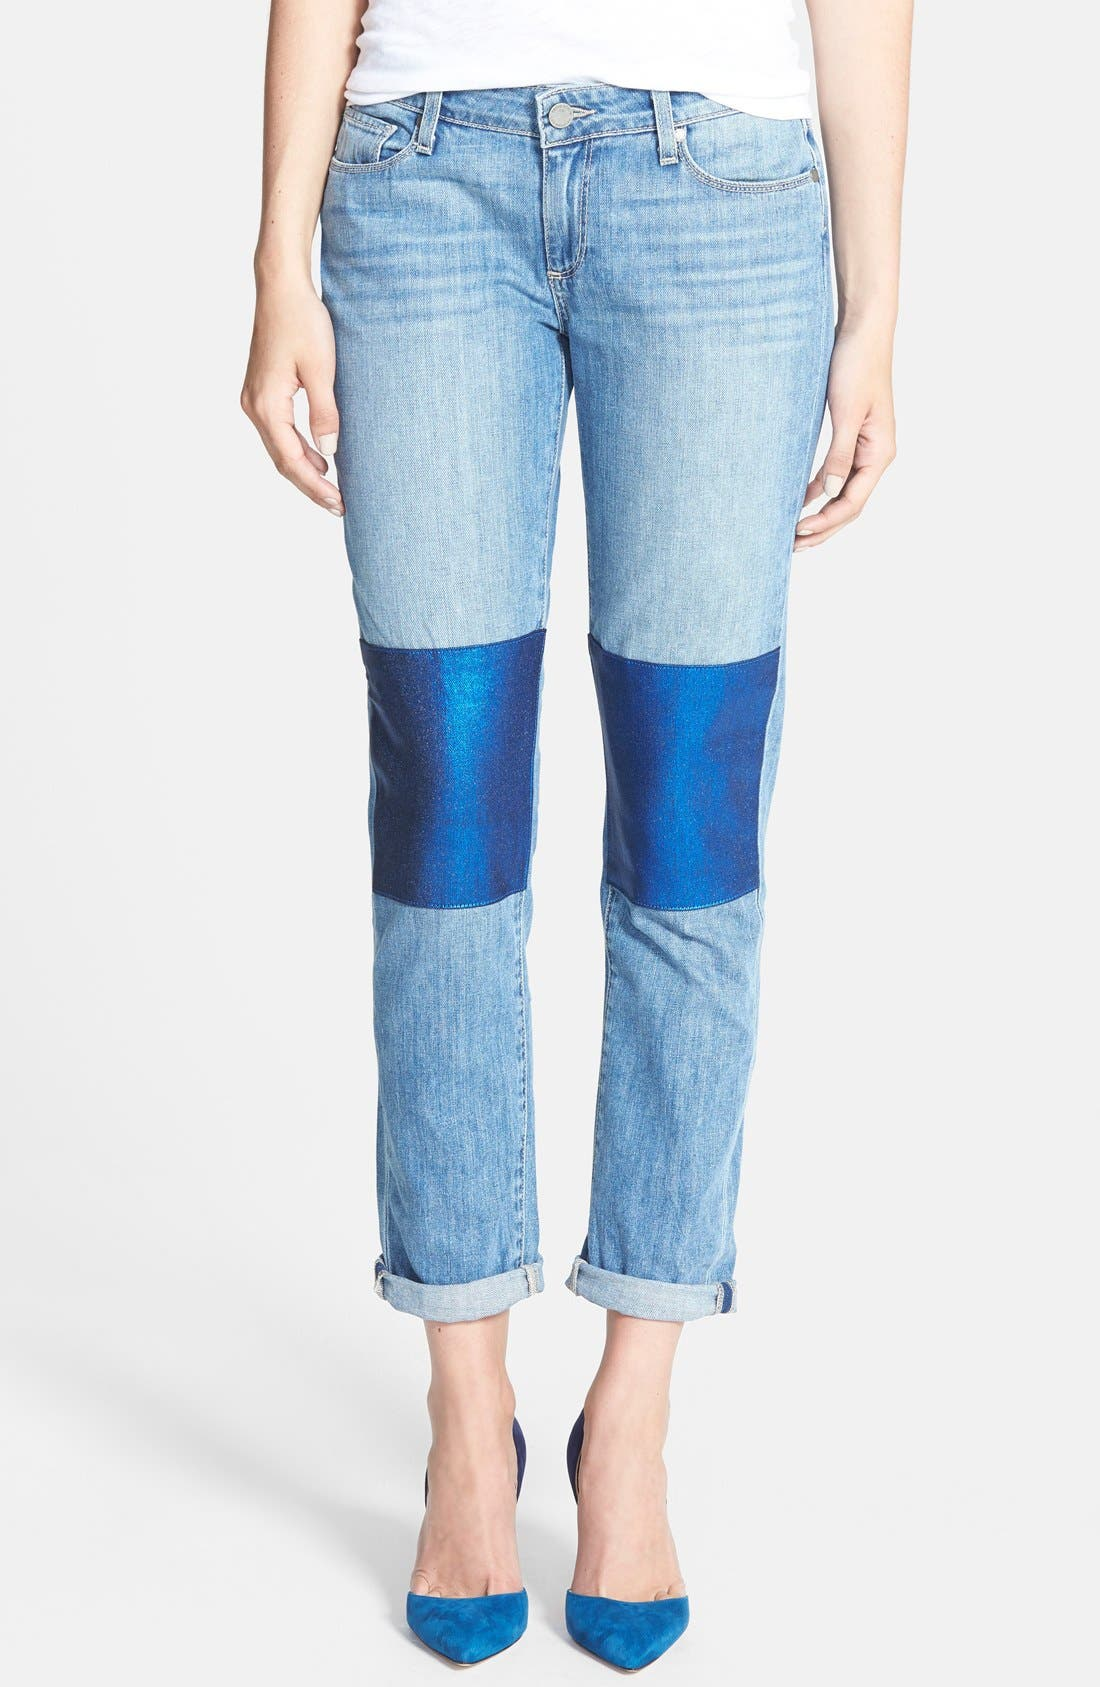 Alternate Image 1 Selected - Paige Denim 'Jimmy Jimmy' Knee Patch Skinny Boyfriend Jeans (Nico Blue)